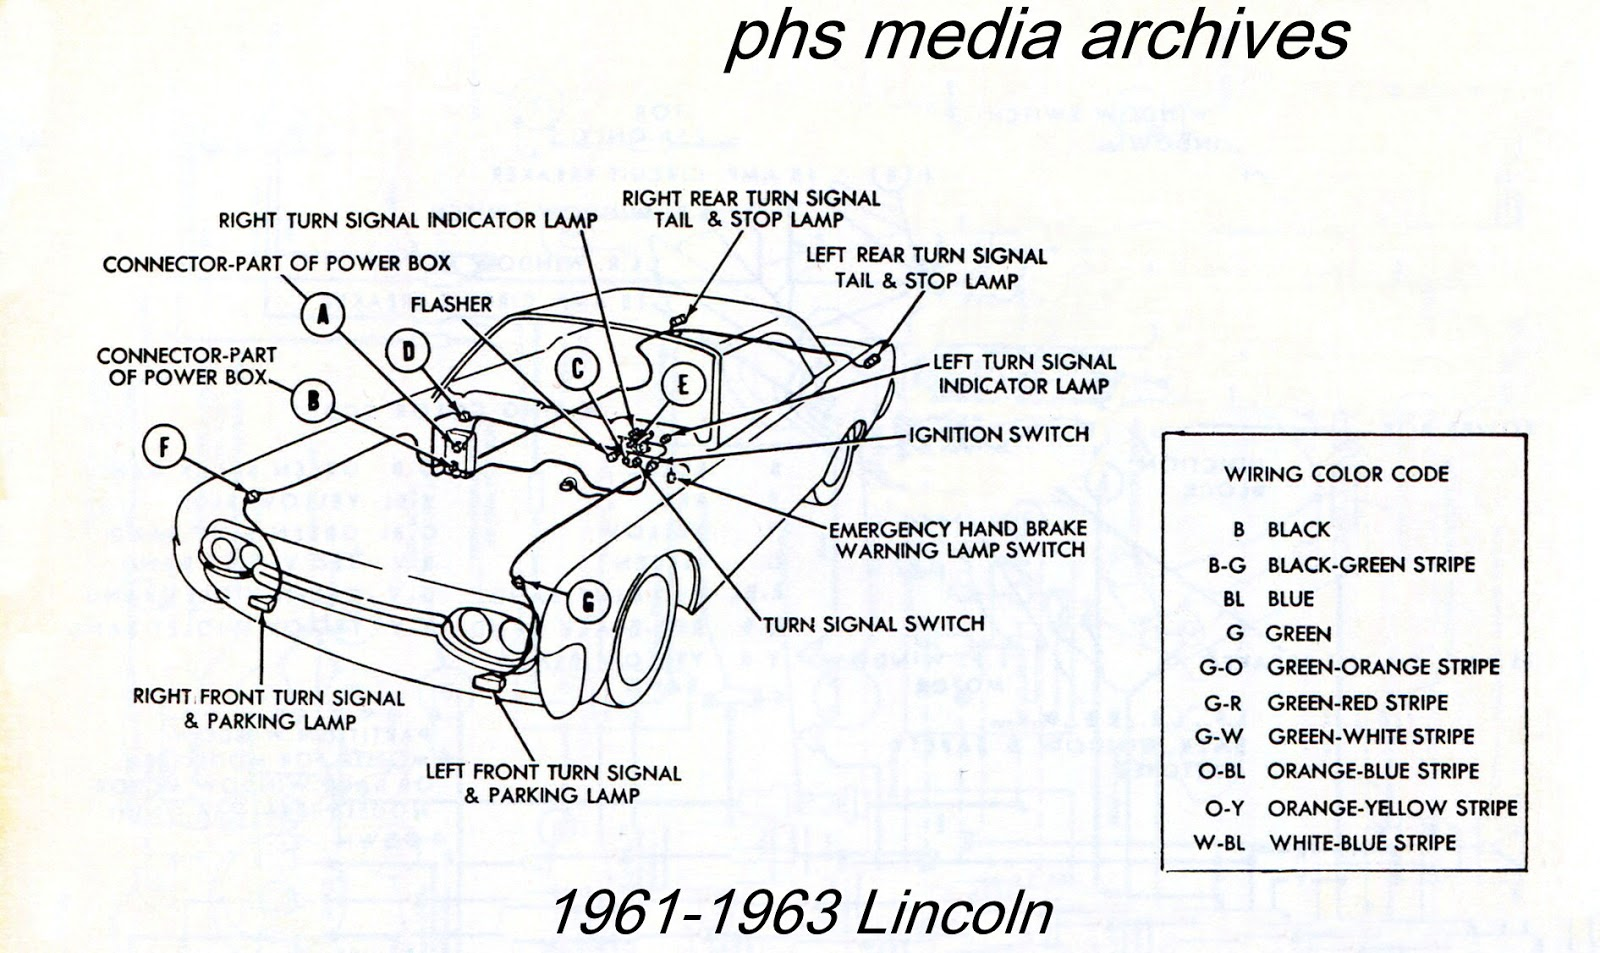 tech series 1960 1964 lincoln wiring diagrams phscollectorcarworld rh phscollectorcarworld blogspot com 1963 Lincoln Continental Parts 1999 Lincoln Continental Wiring-Diagram